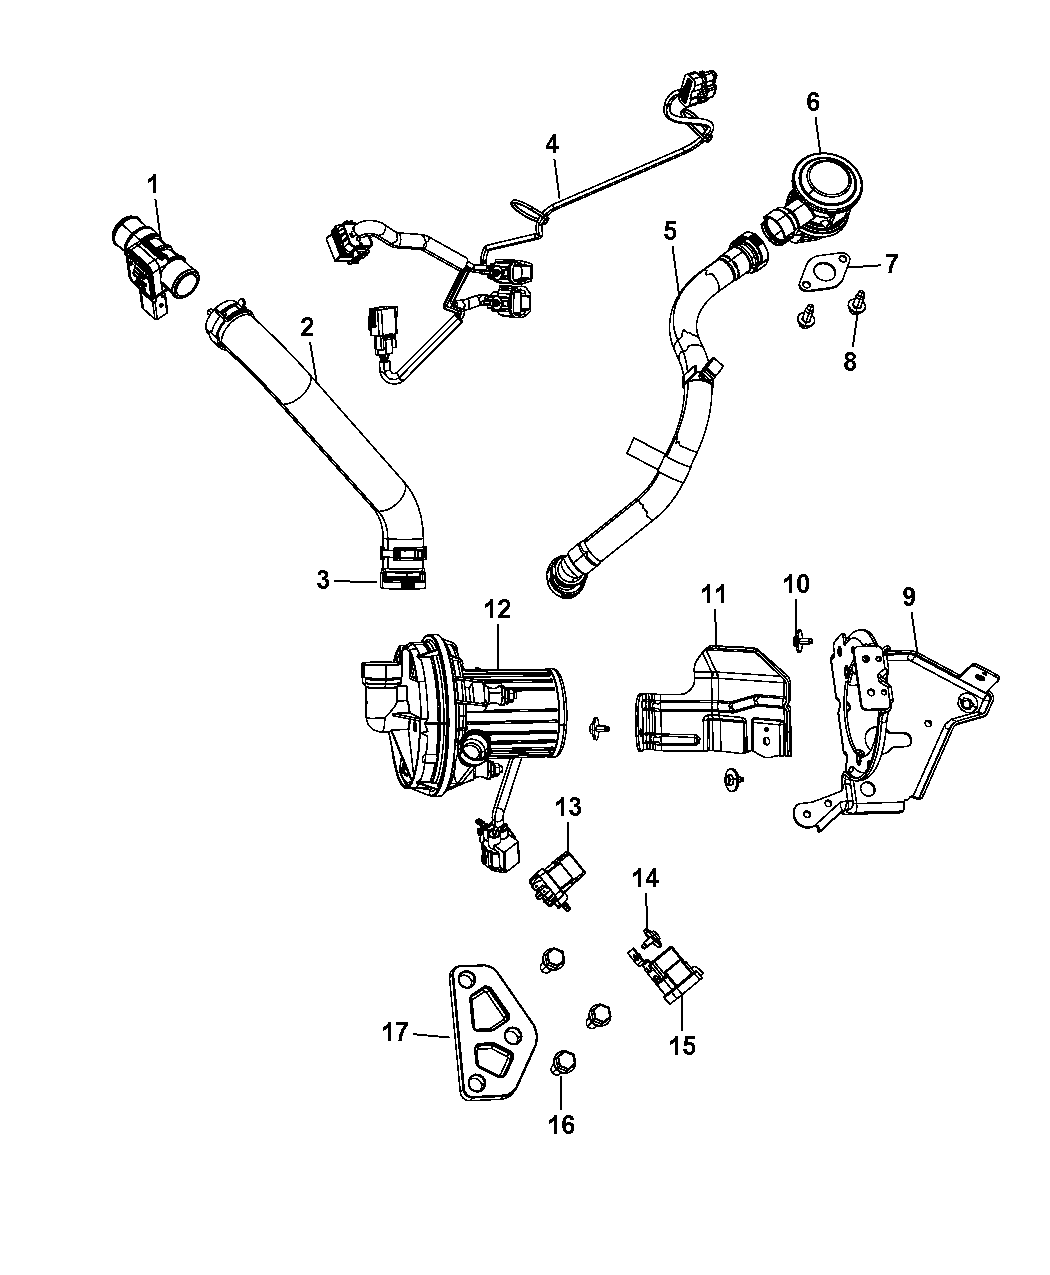 chrysler 200 suspension parts diagram  u2022 wiring diagram for